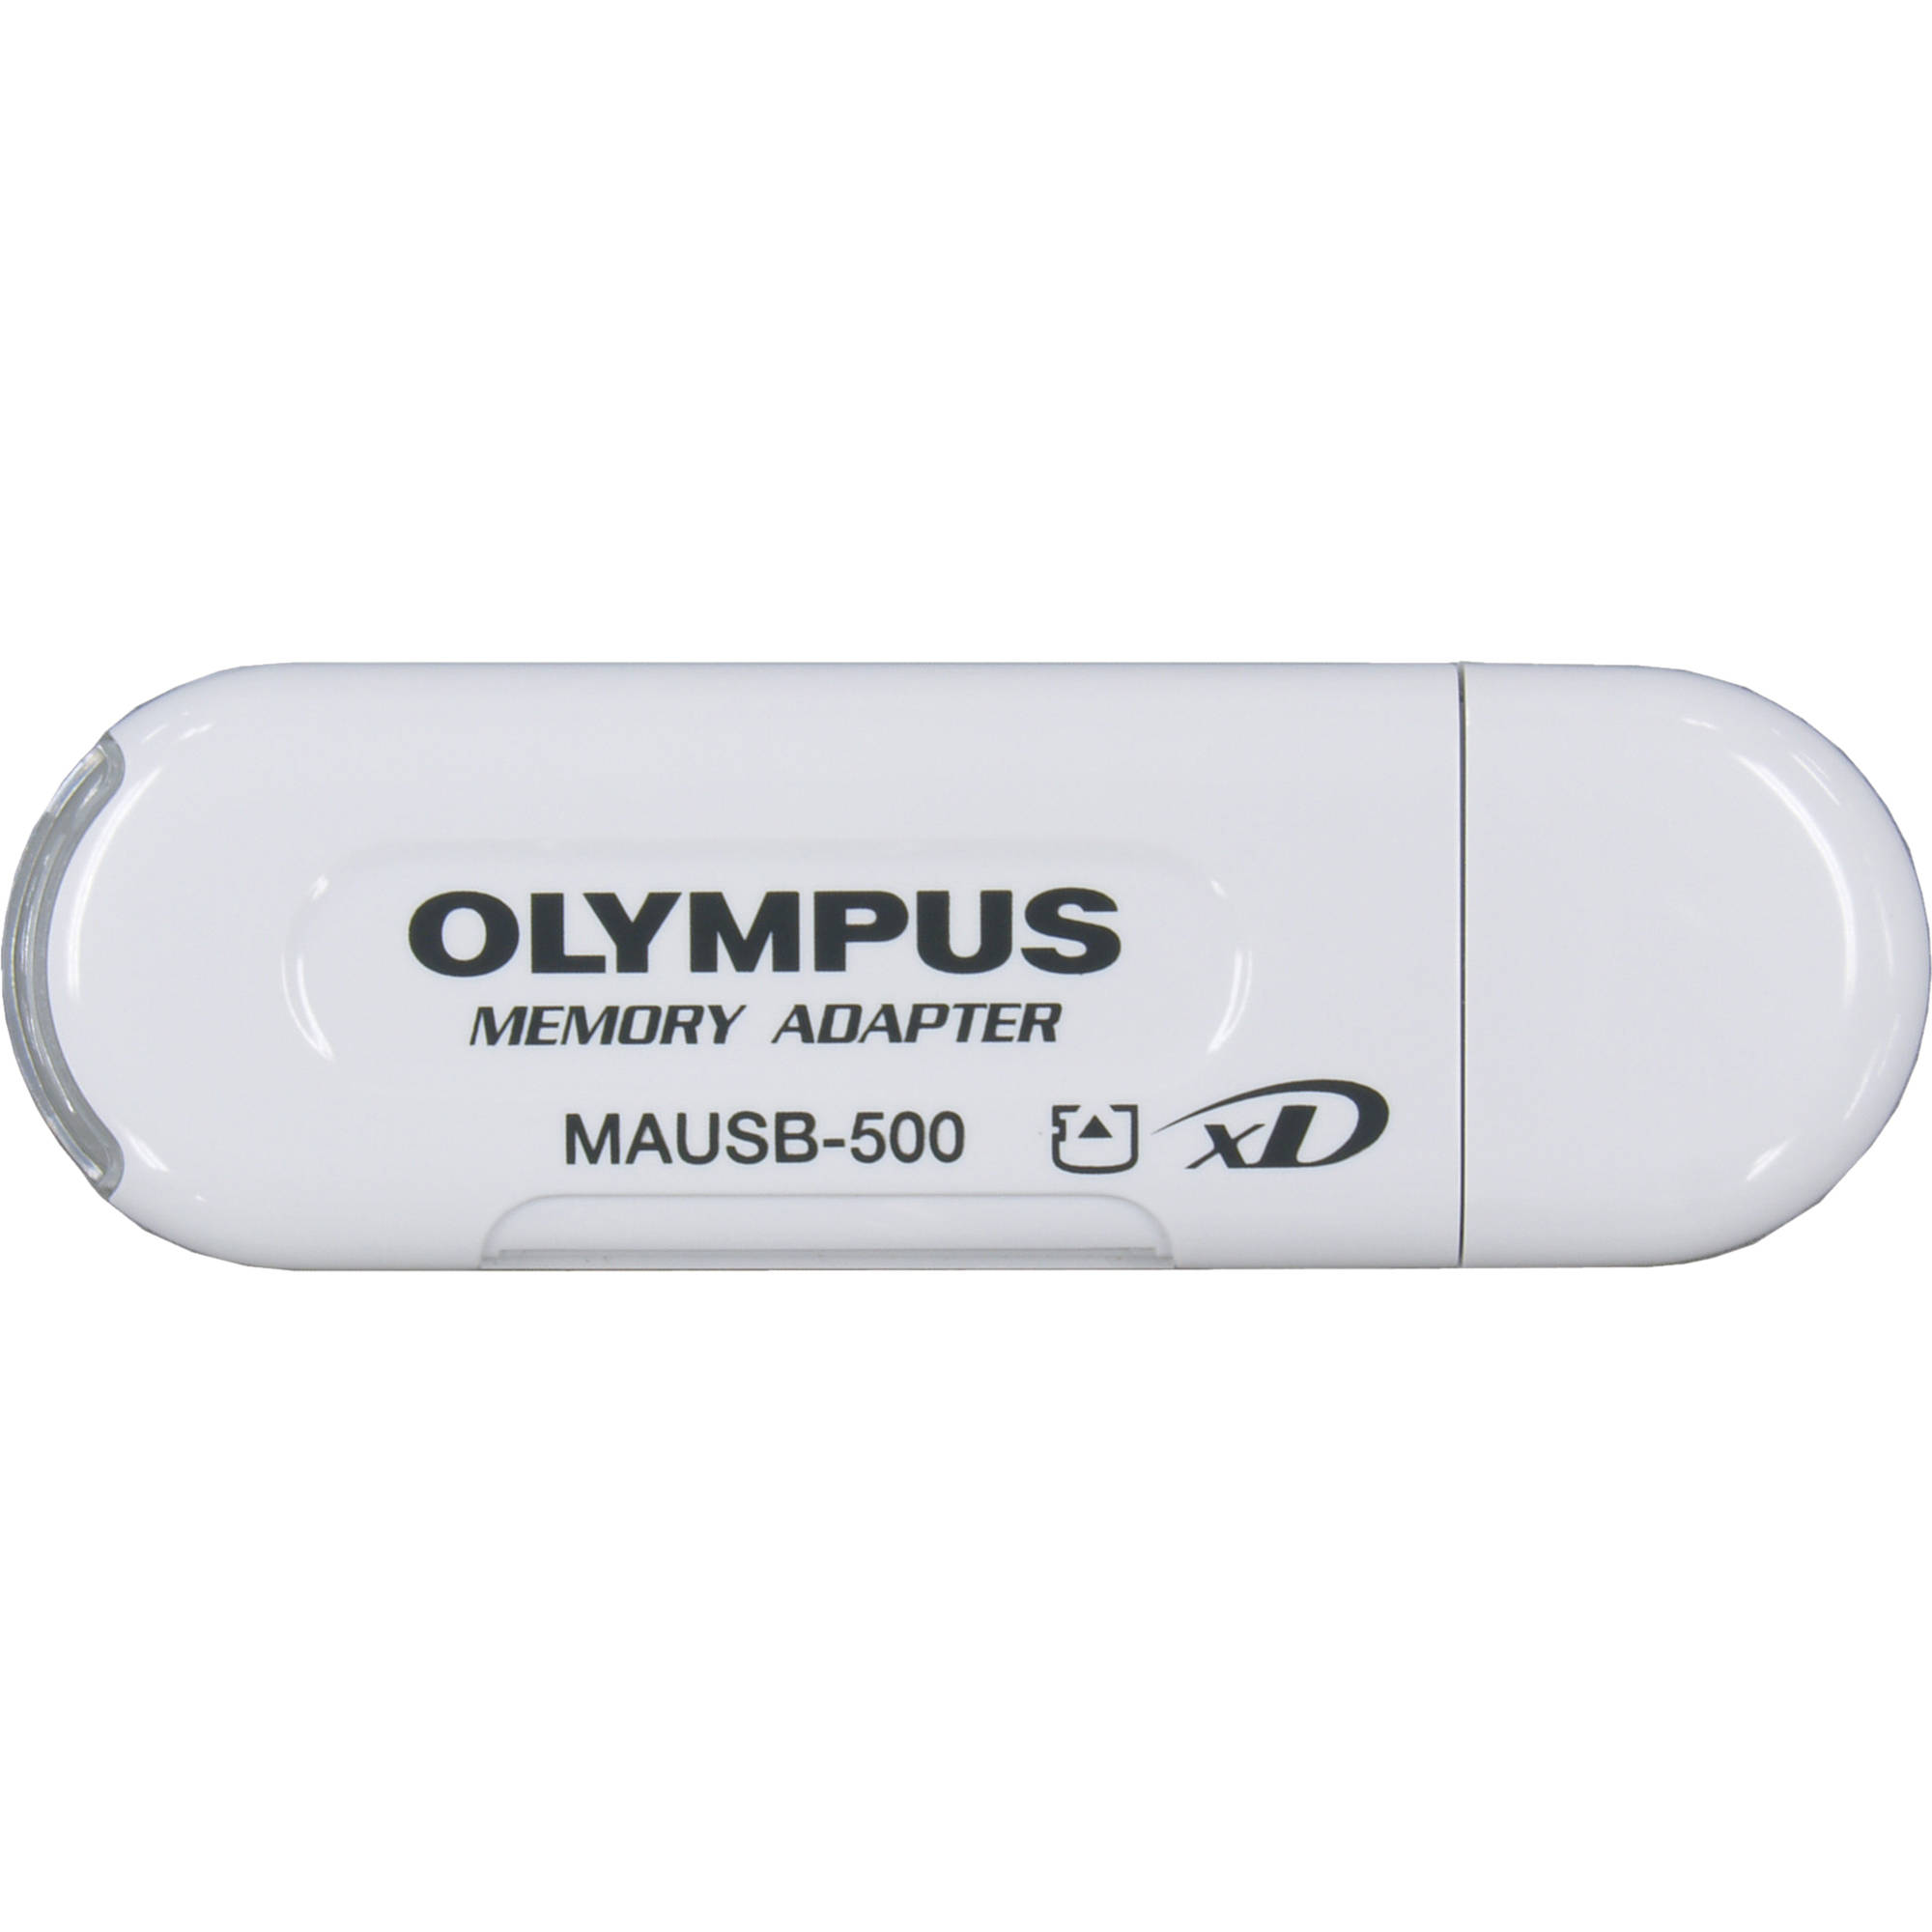 MAUSB 2 DOWNLOAD DRIVERS